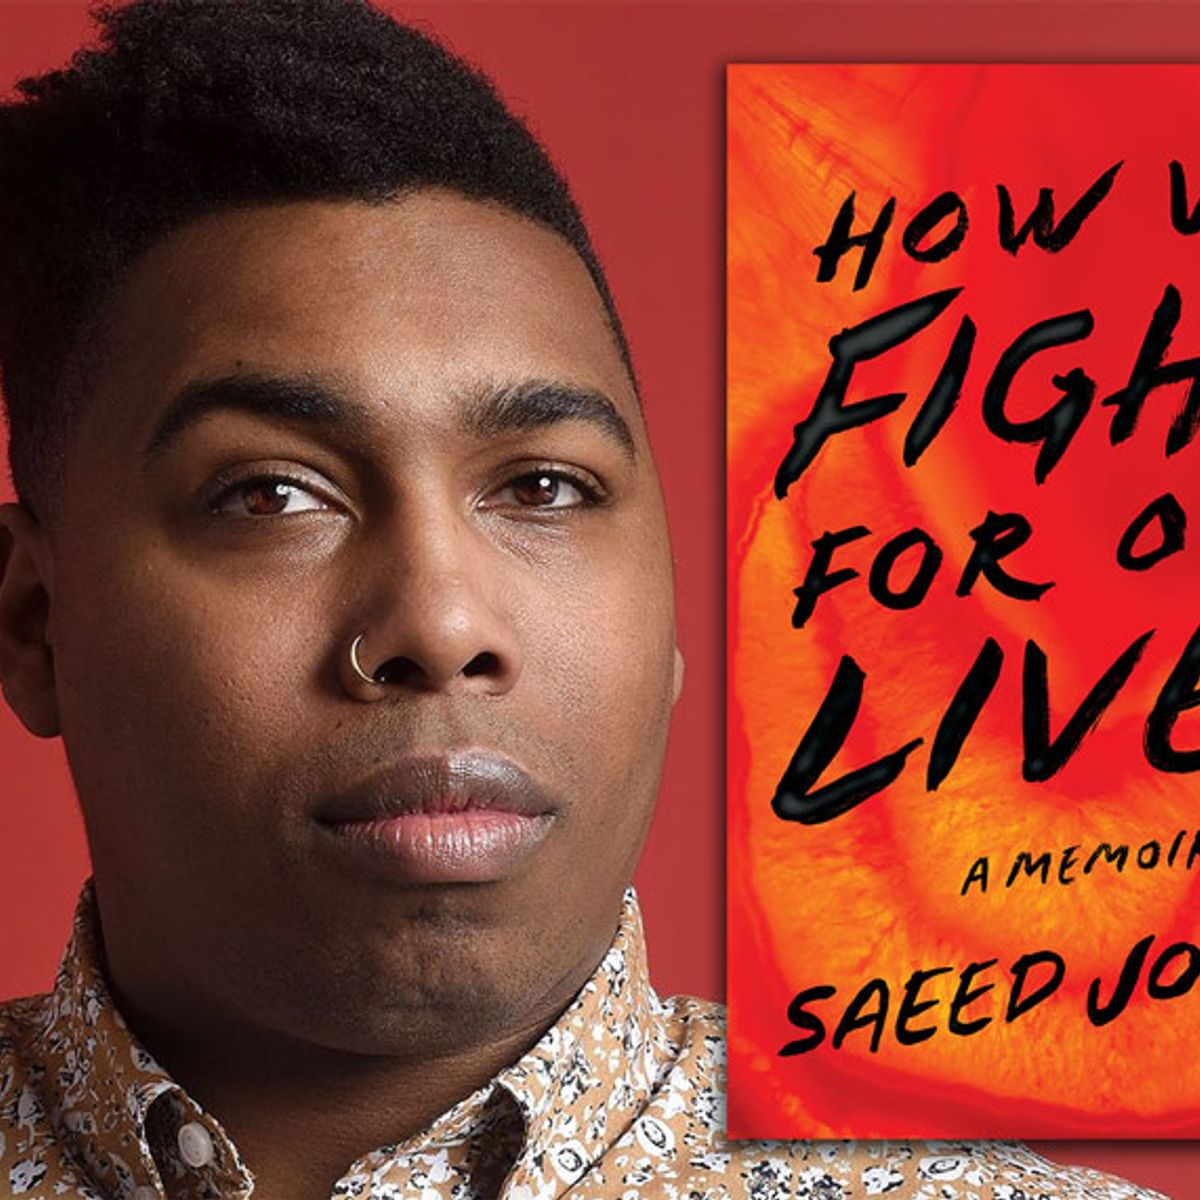 """Saeed Jones on """"How We Fight For Our Lives"""" and writing with """"skin in the game"""""""